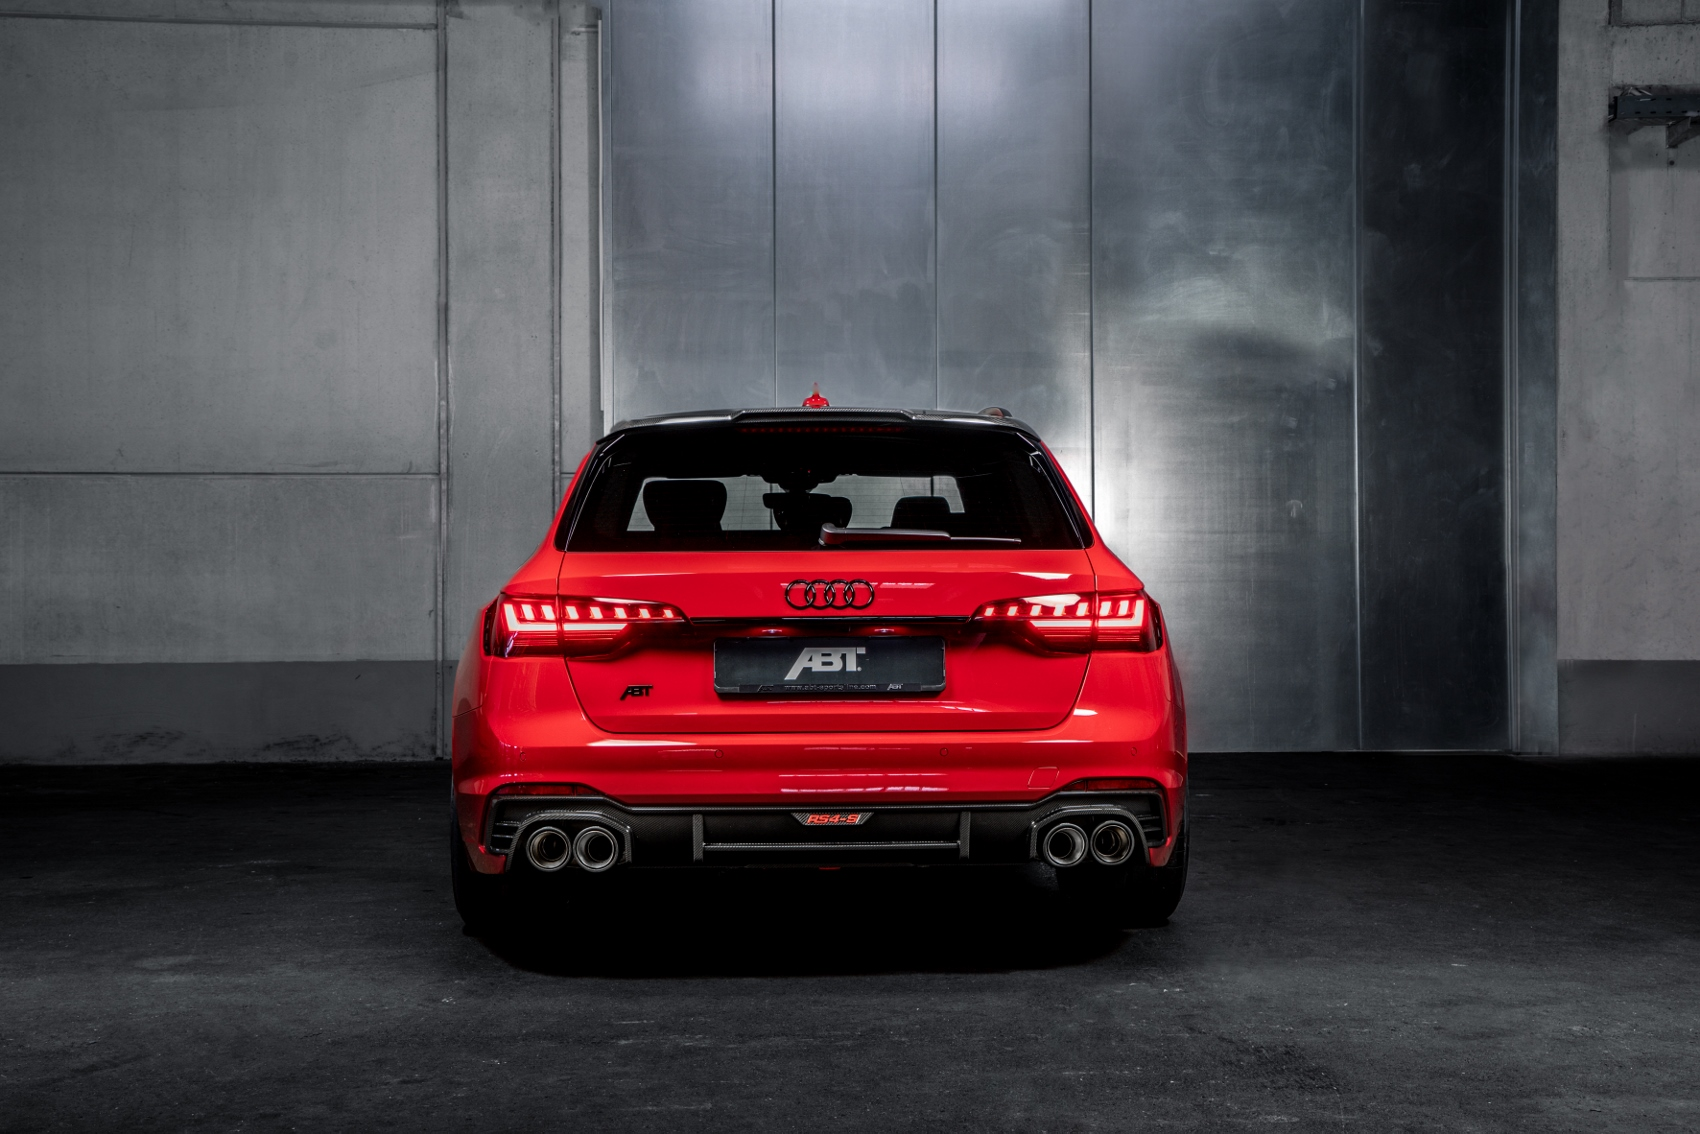 ABT_RS4-S (3)